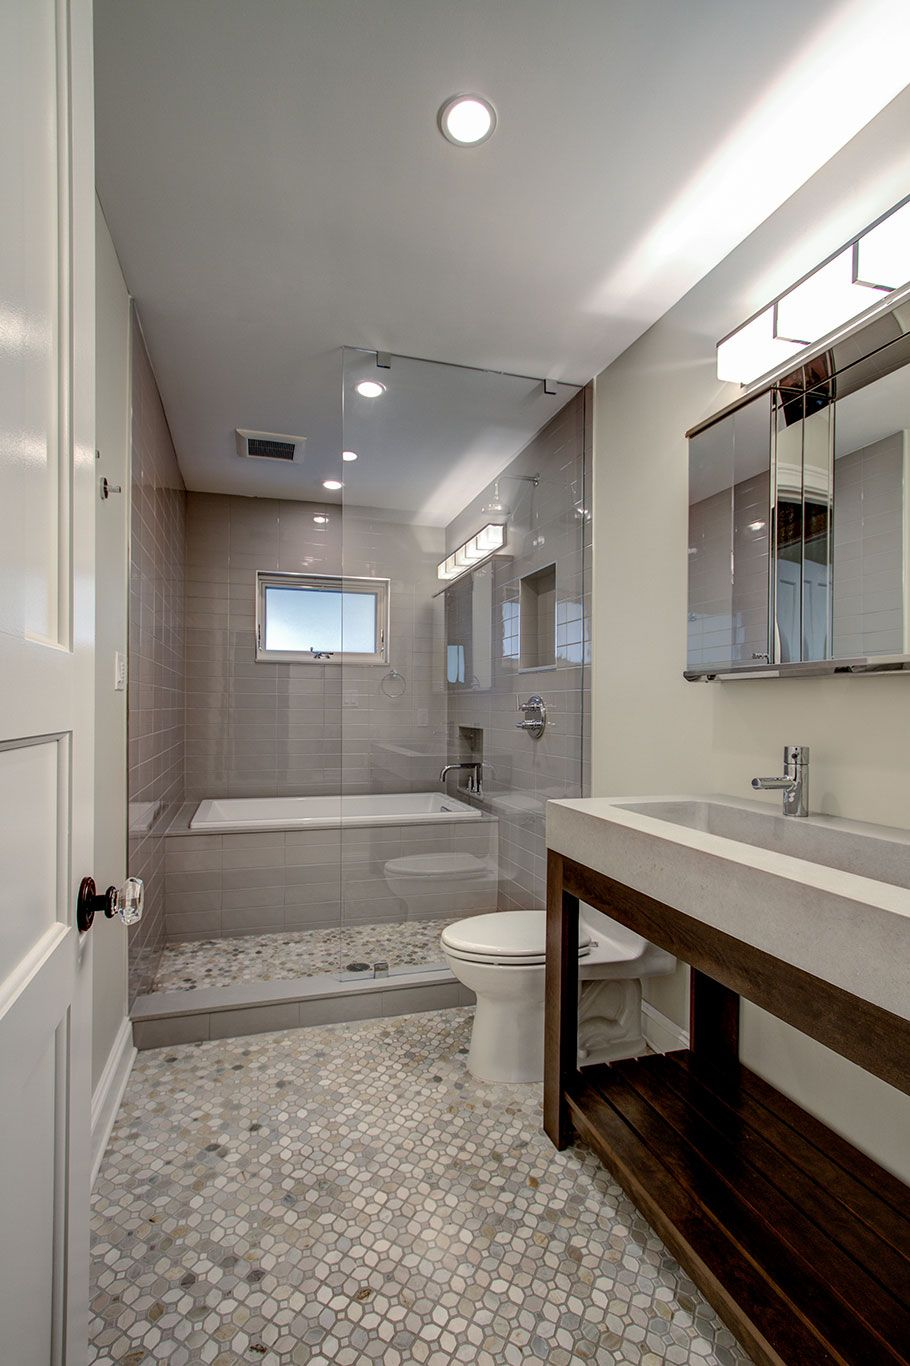 guest bathroom shower ideas. Guest Bathroom With Tub Enclosed Within Glassed-in Shower Space. Brownstone Renovation In Park Ideas M